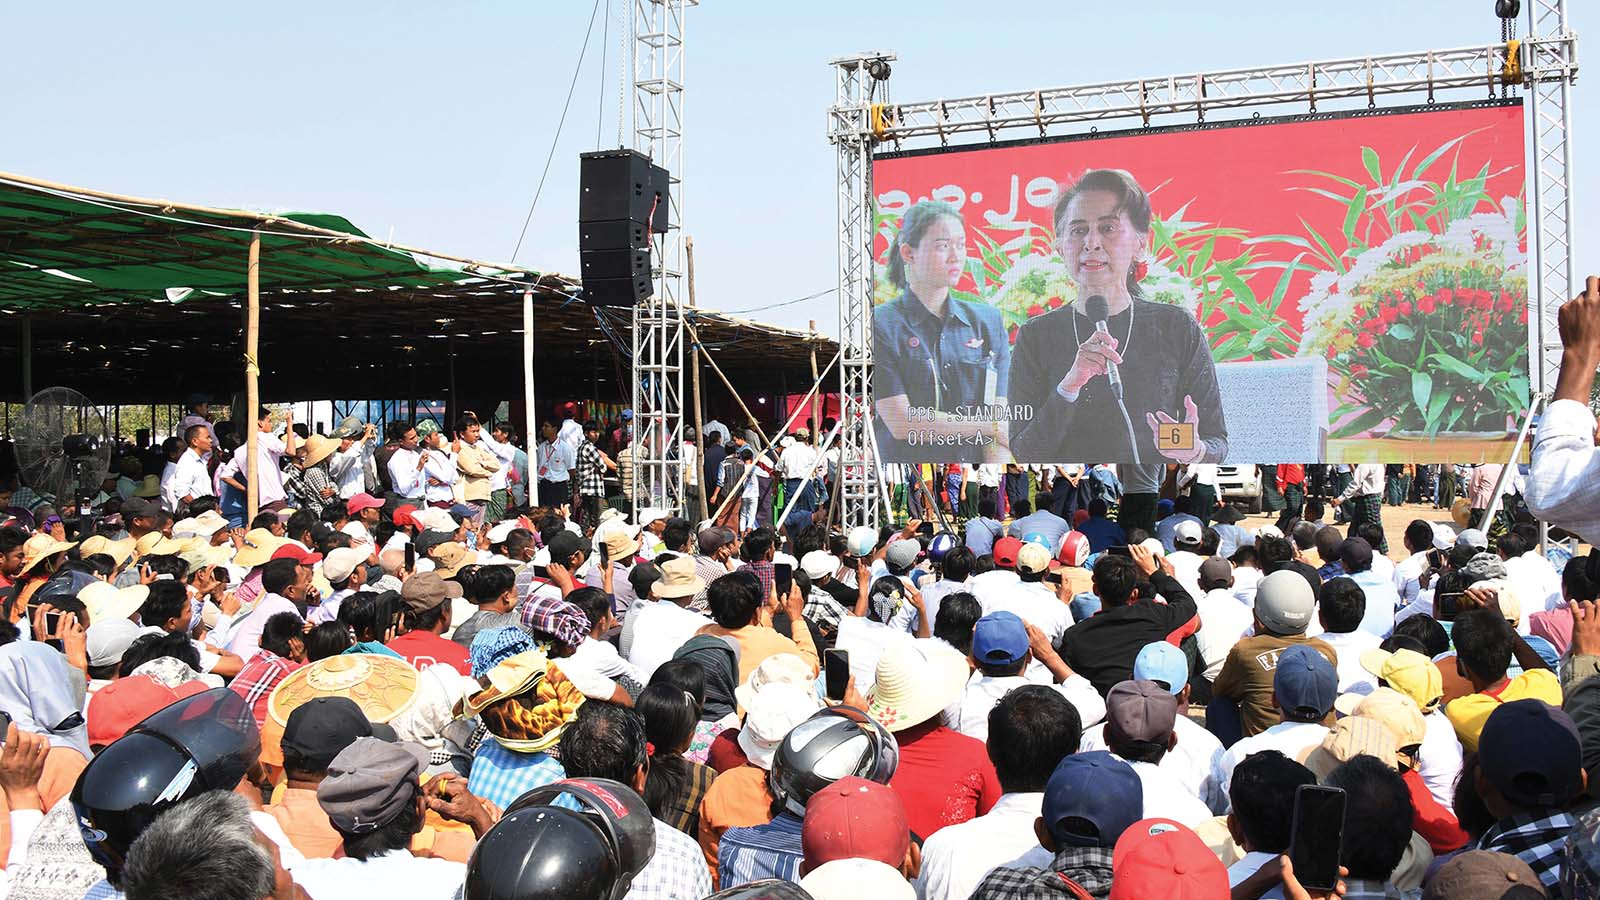 Local people gather outside the main meeting hall listening to the speech delivered by State Counsellor  Daw Aung San Suu Kyi on the LED screen in Dabayin yesterday.Photo: MNA